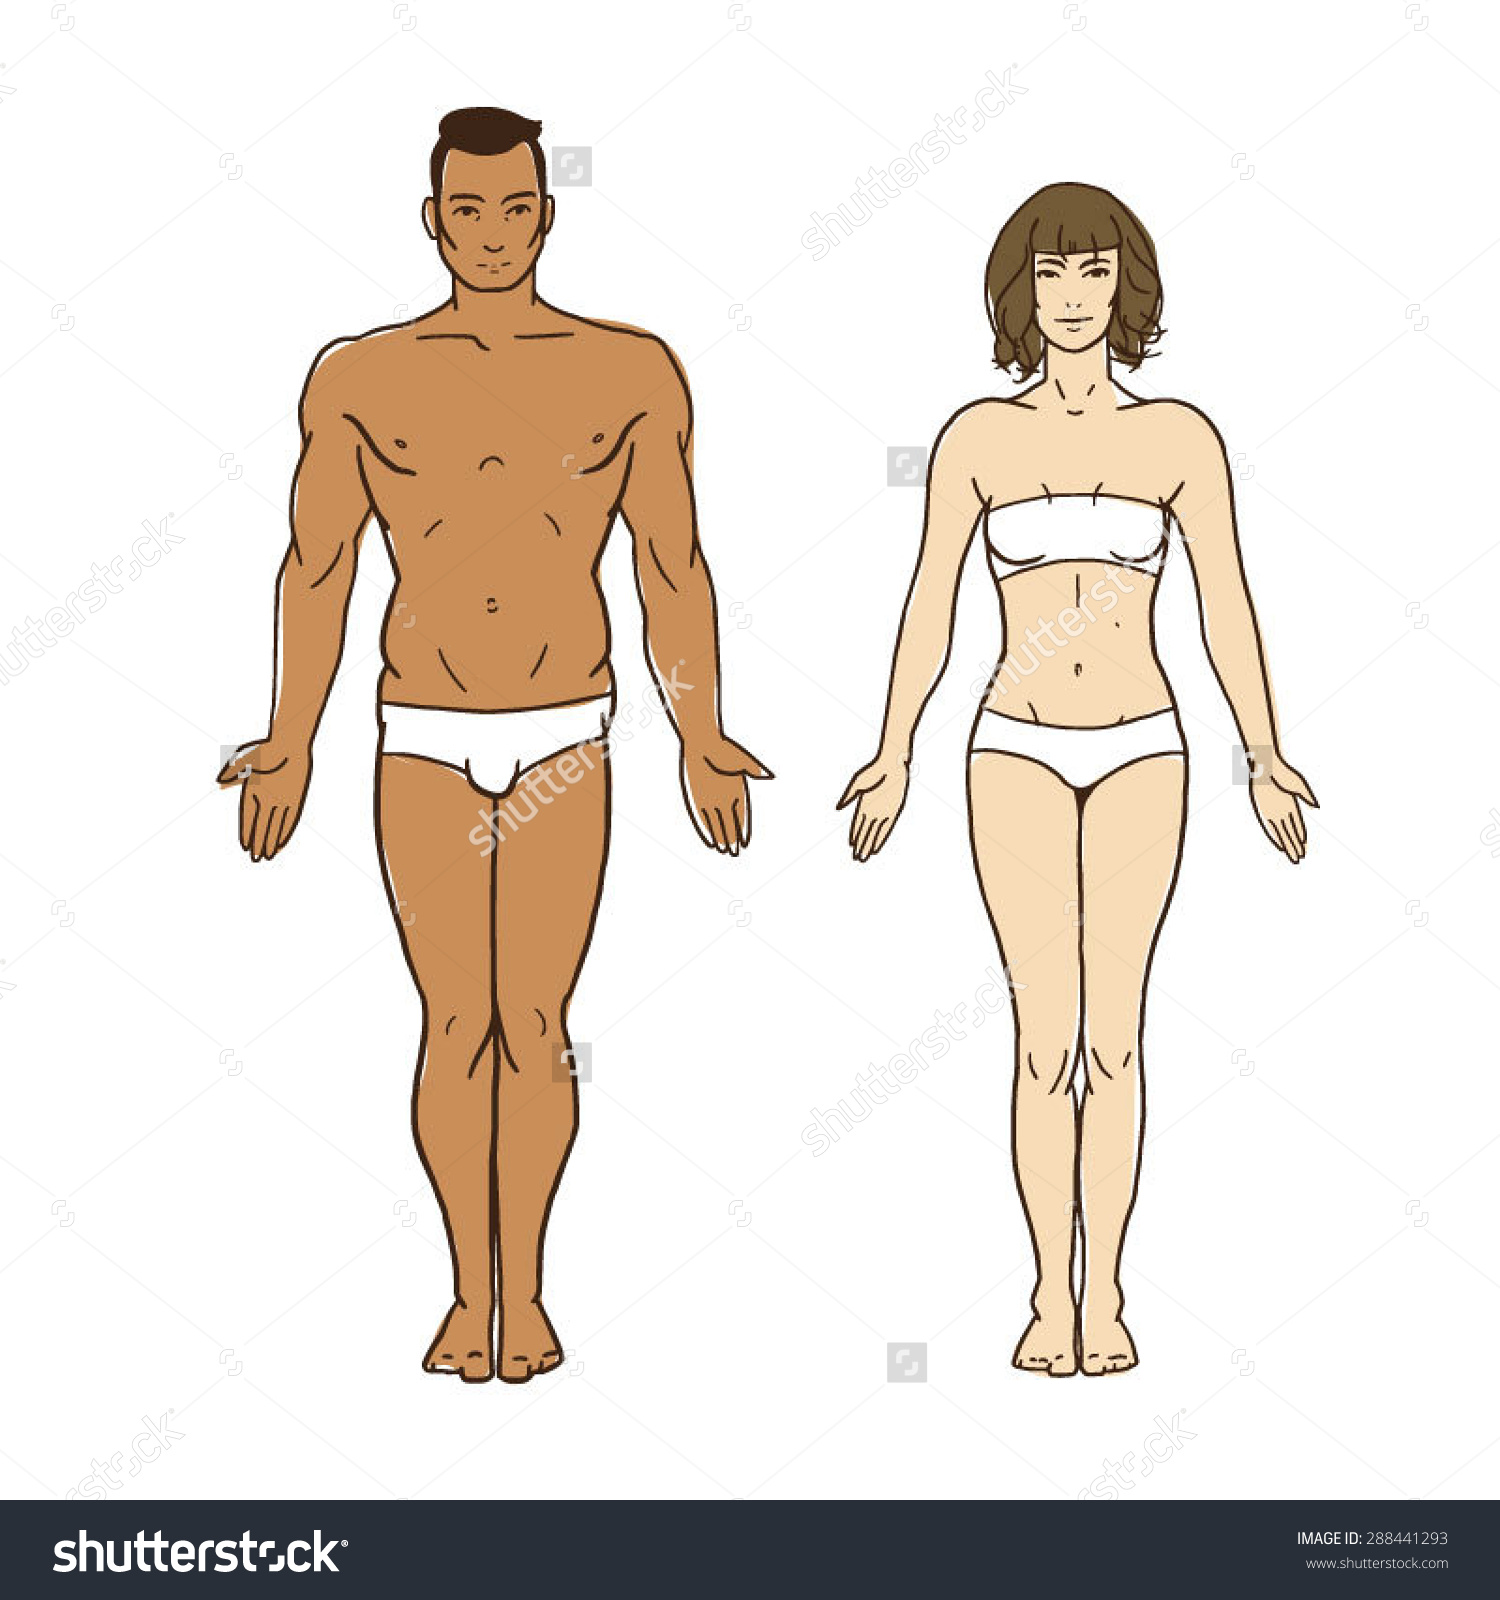 1500x1600 Man and woman healthy body figures vector drawing human figures